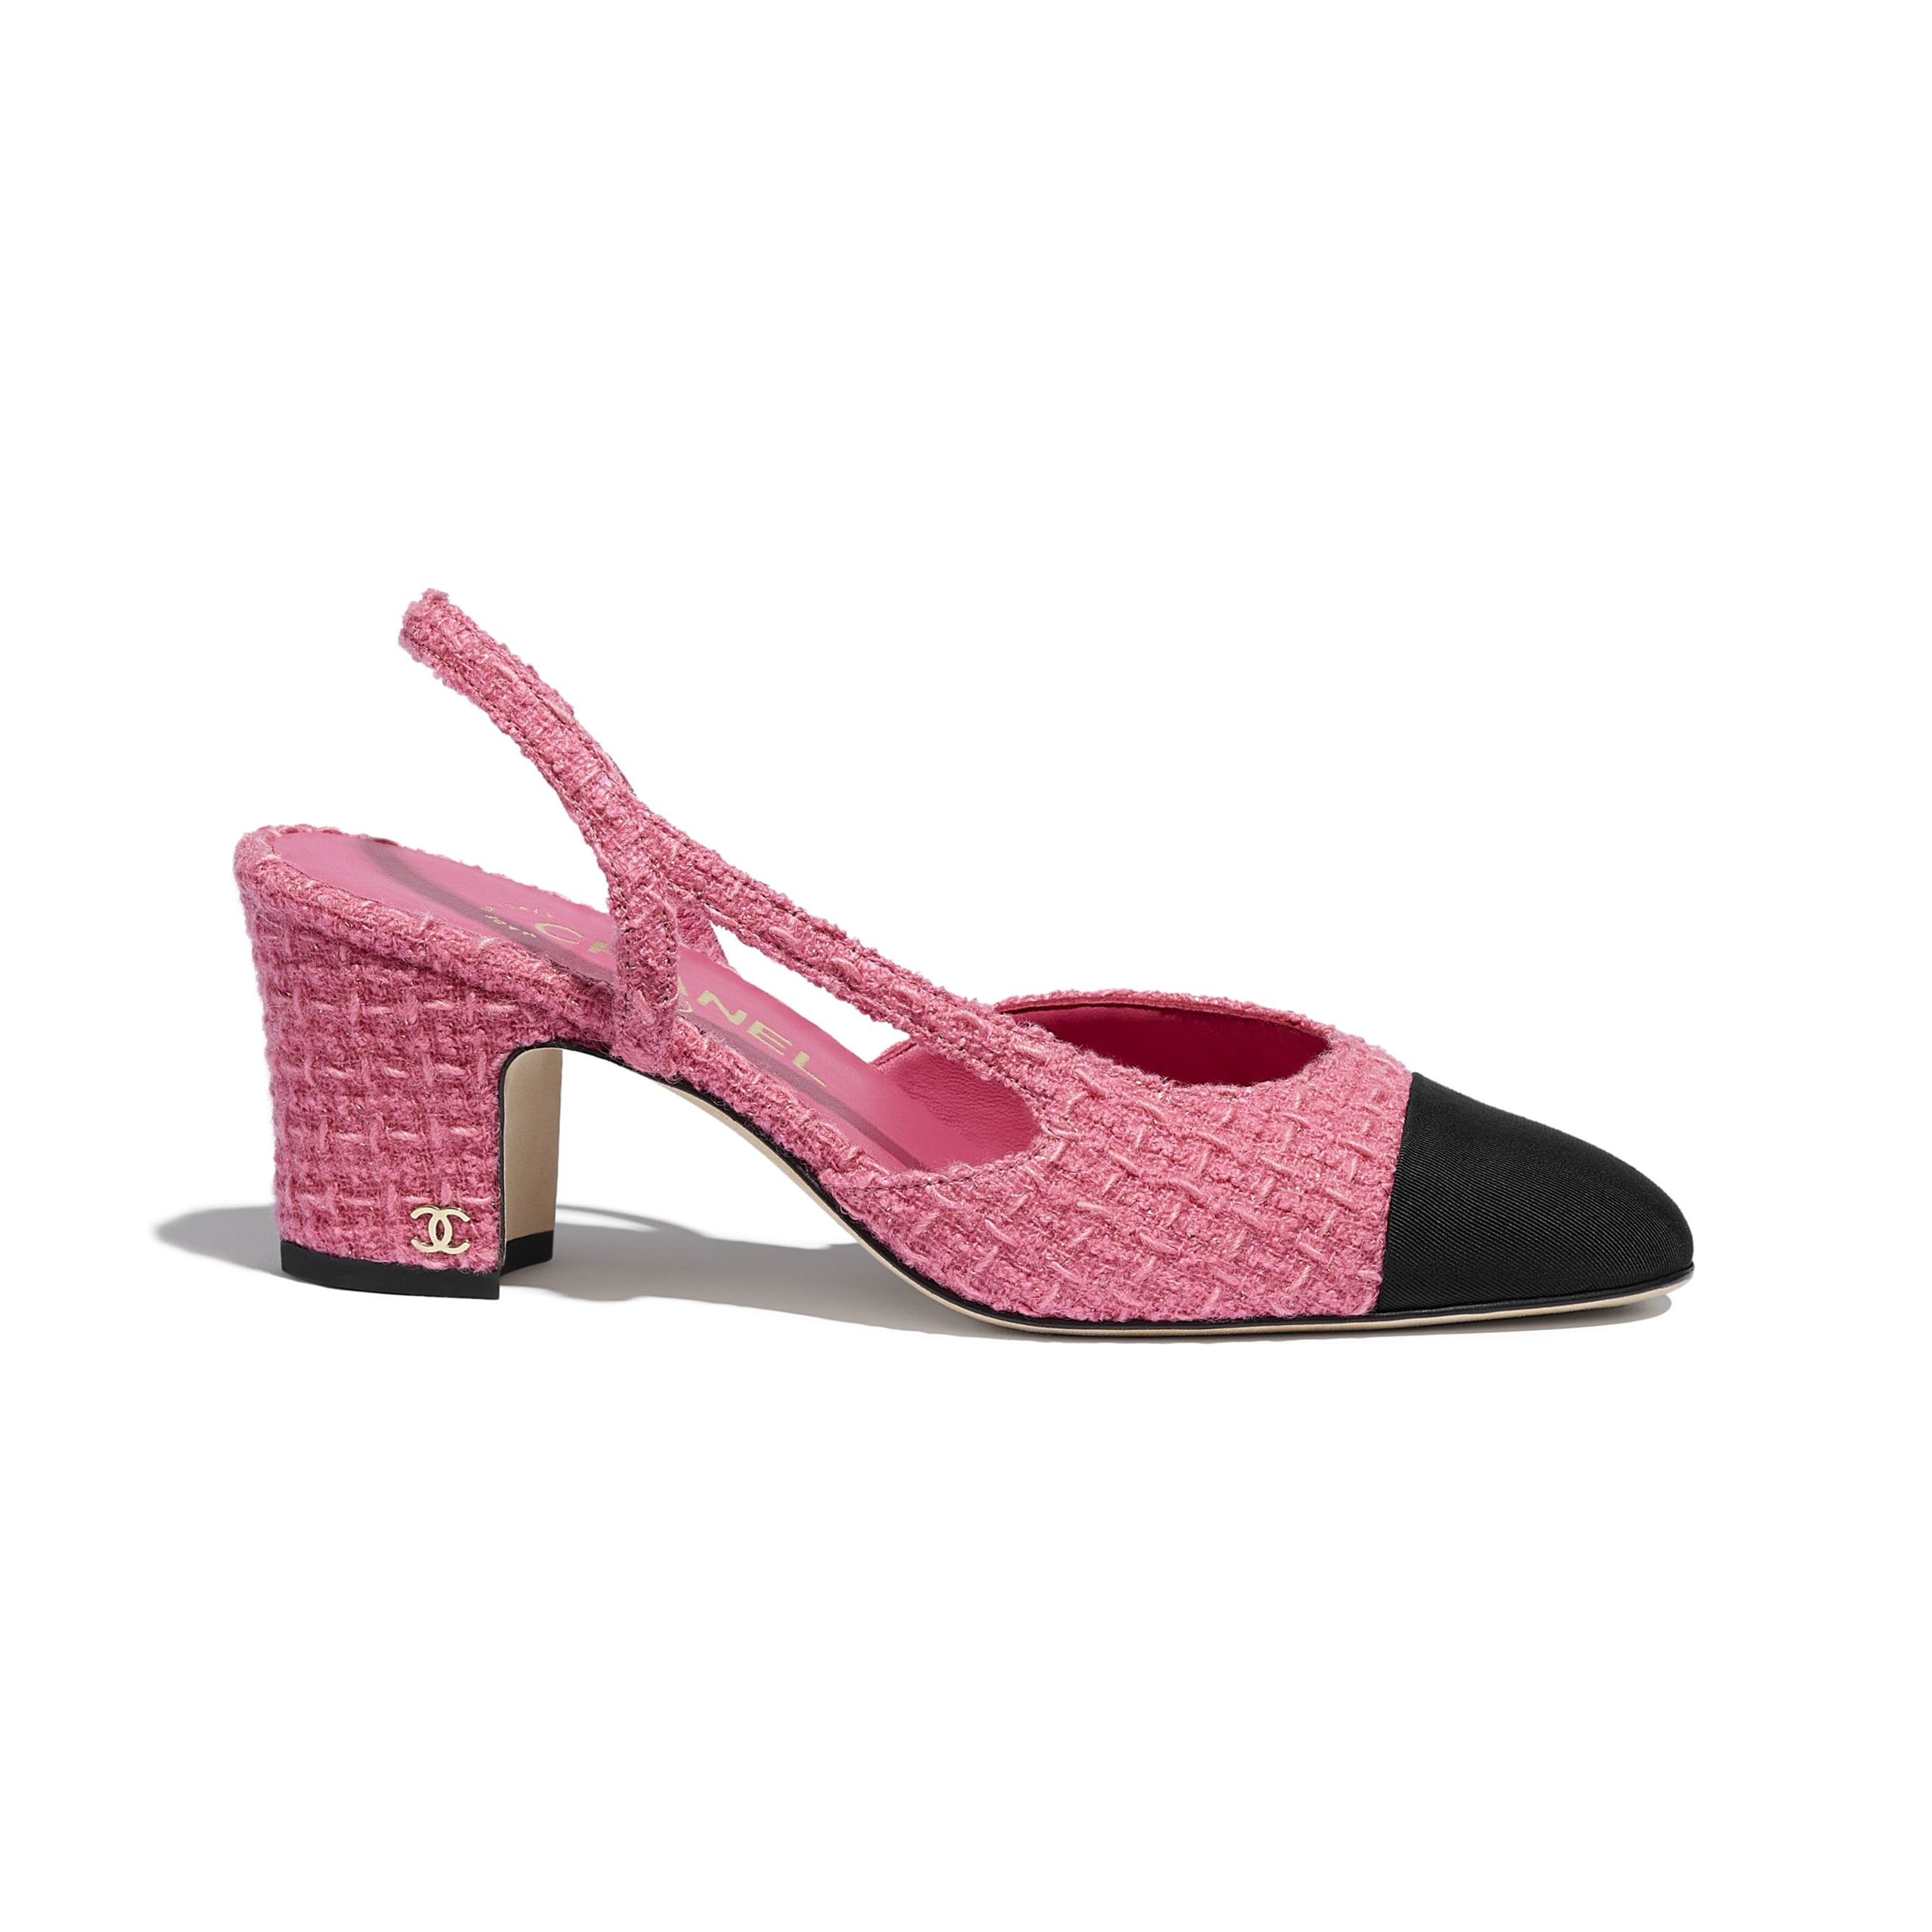 Sling-Back - Pink & Black - Tweed & Grosgrain - CHANEL - Default view - see standard sized version